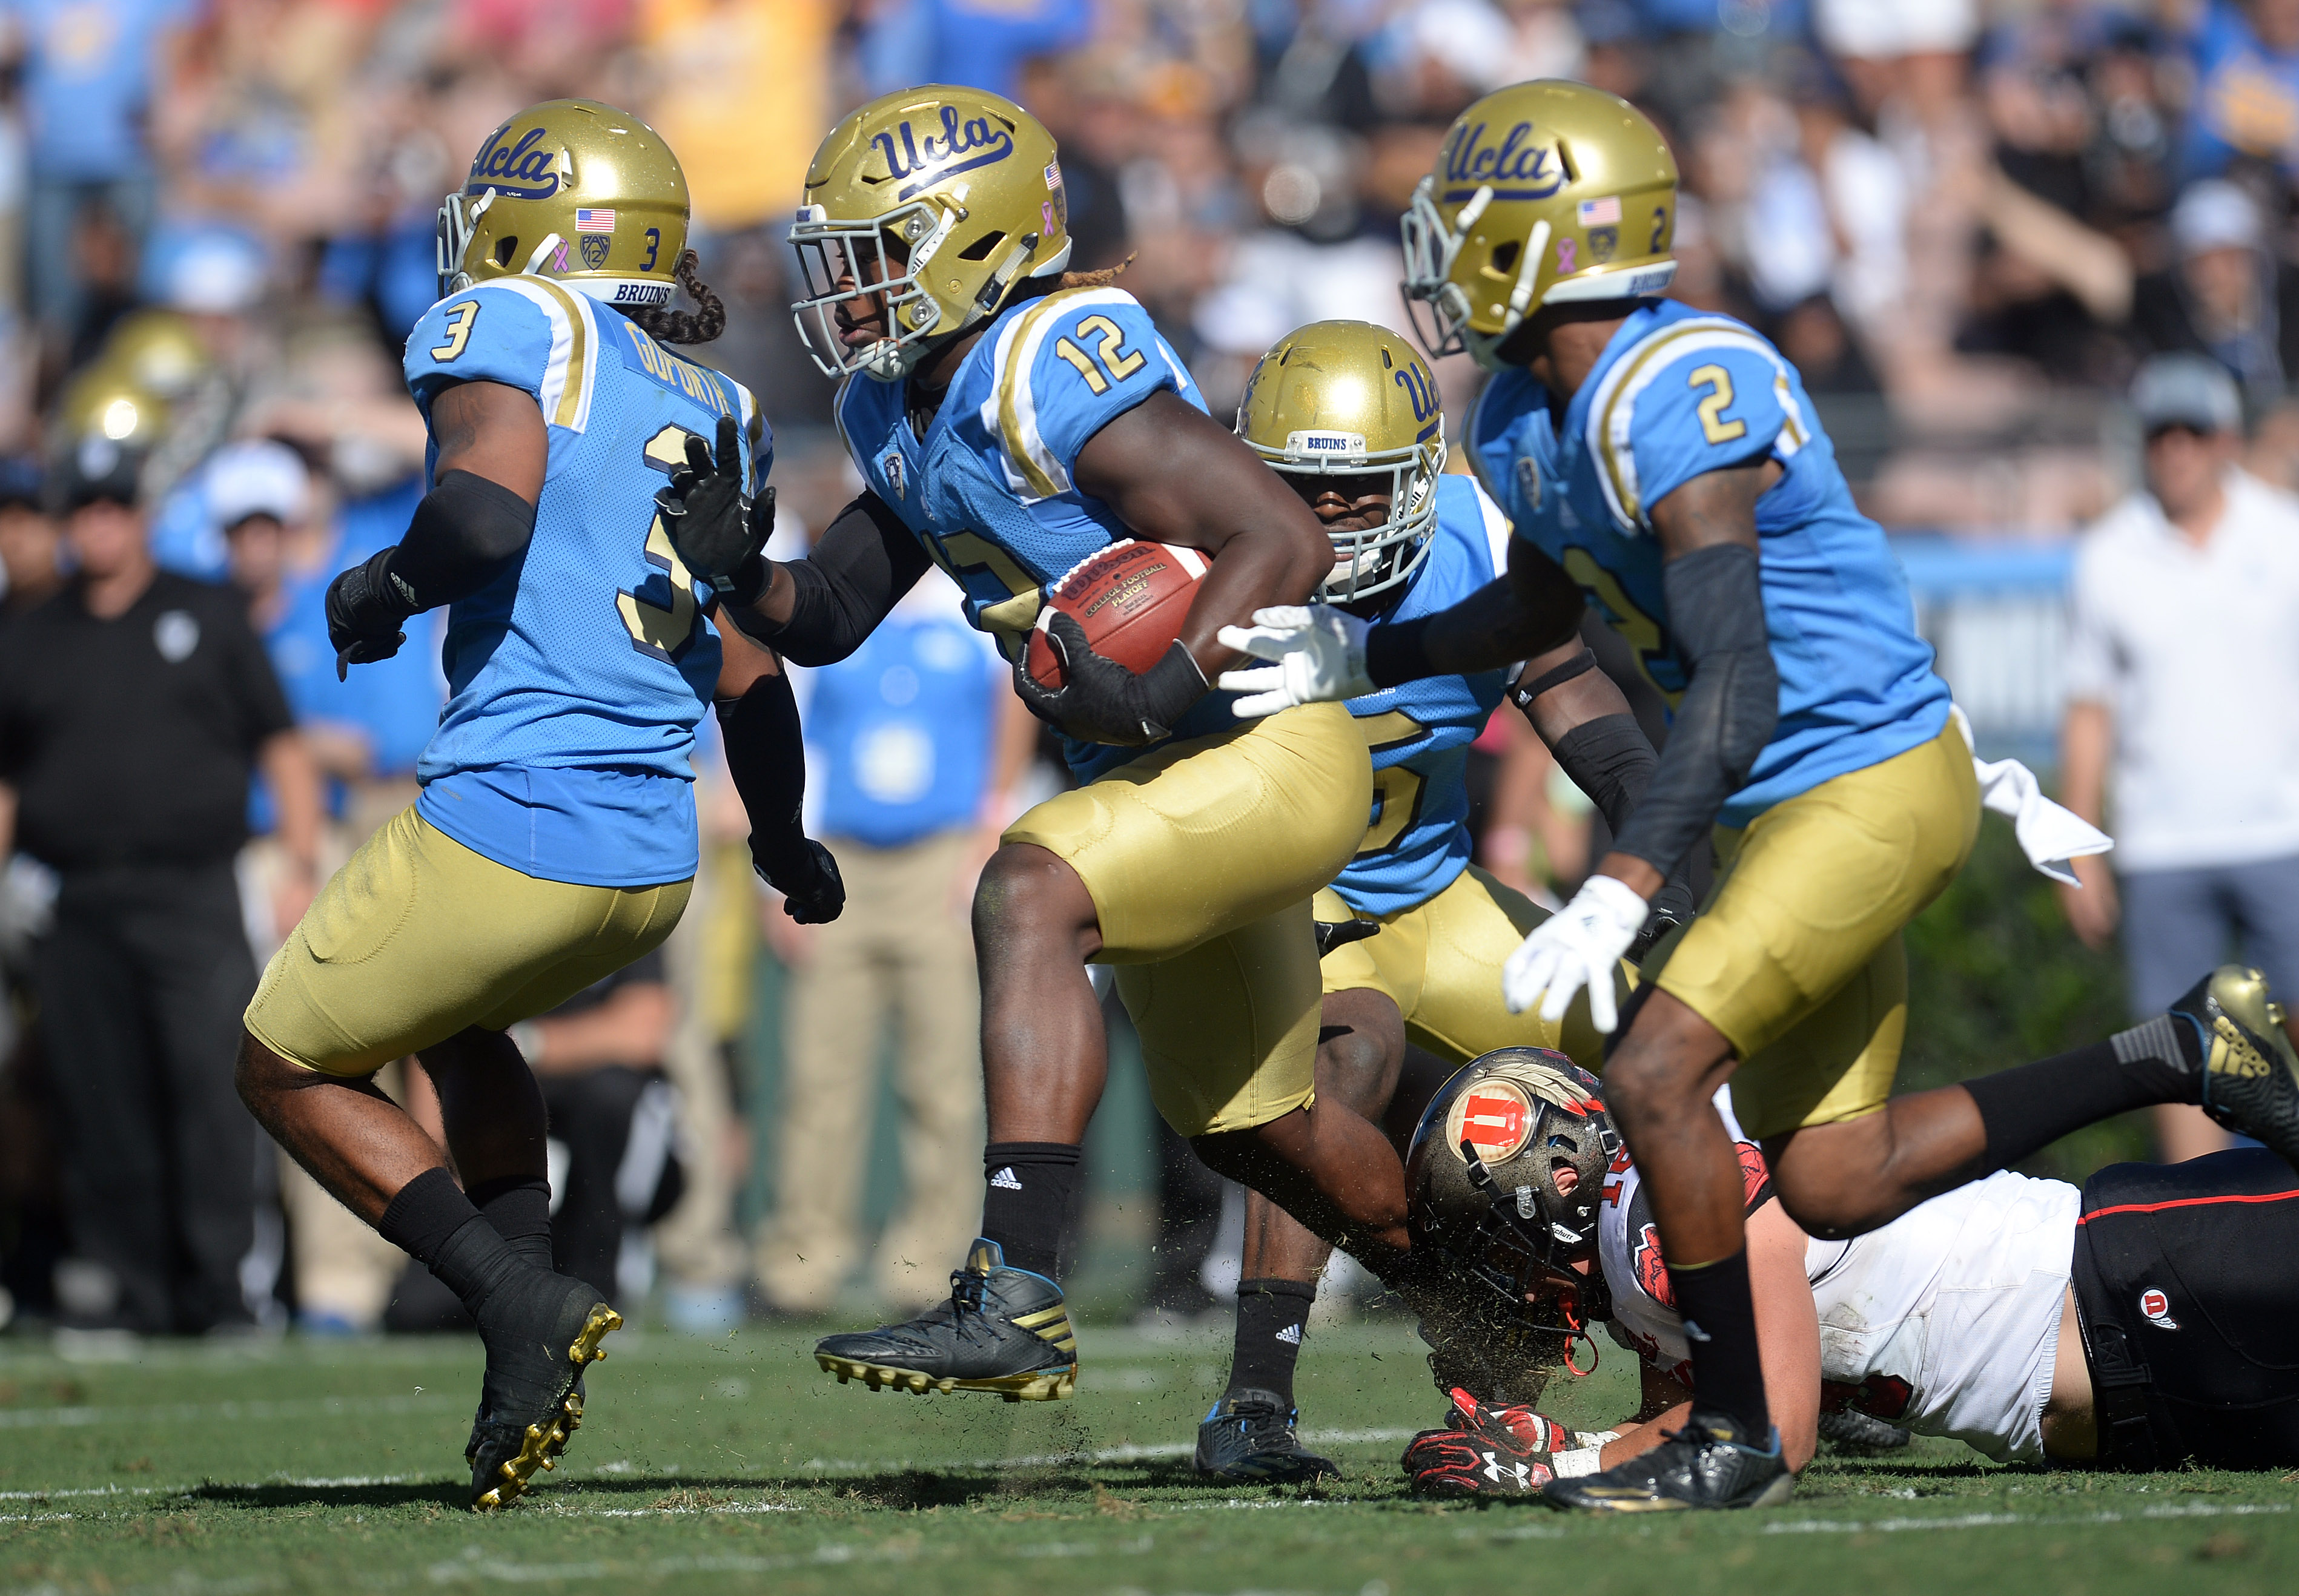 UCLA needs the defense to keep taking the ball away from opponents.